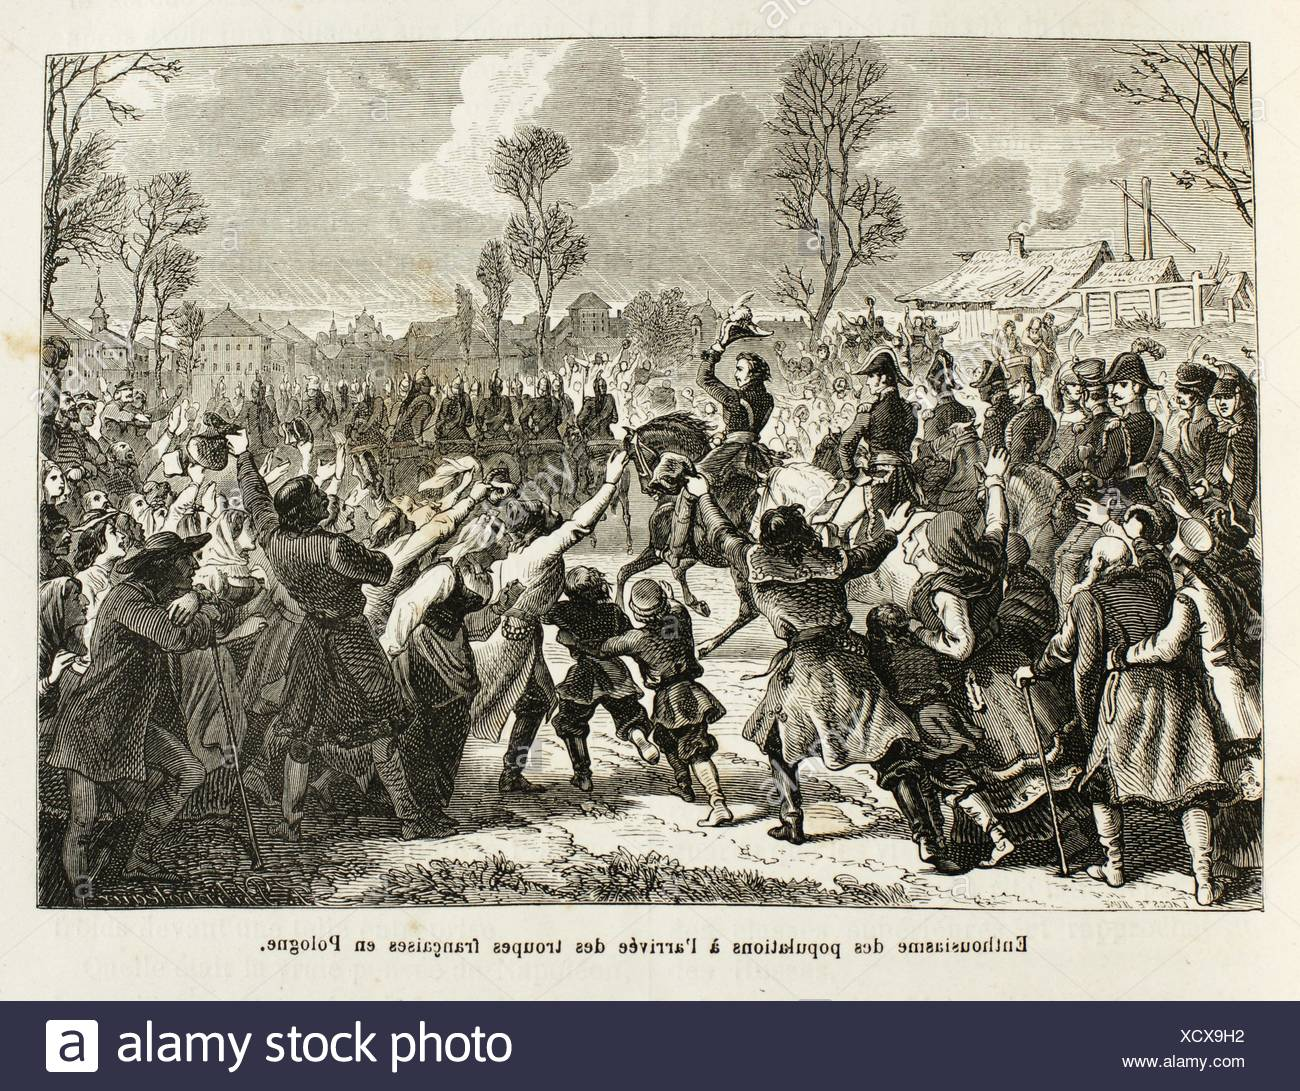 Napoleon troops entering in Poland, 19th century - Stock Image